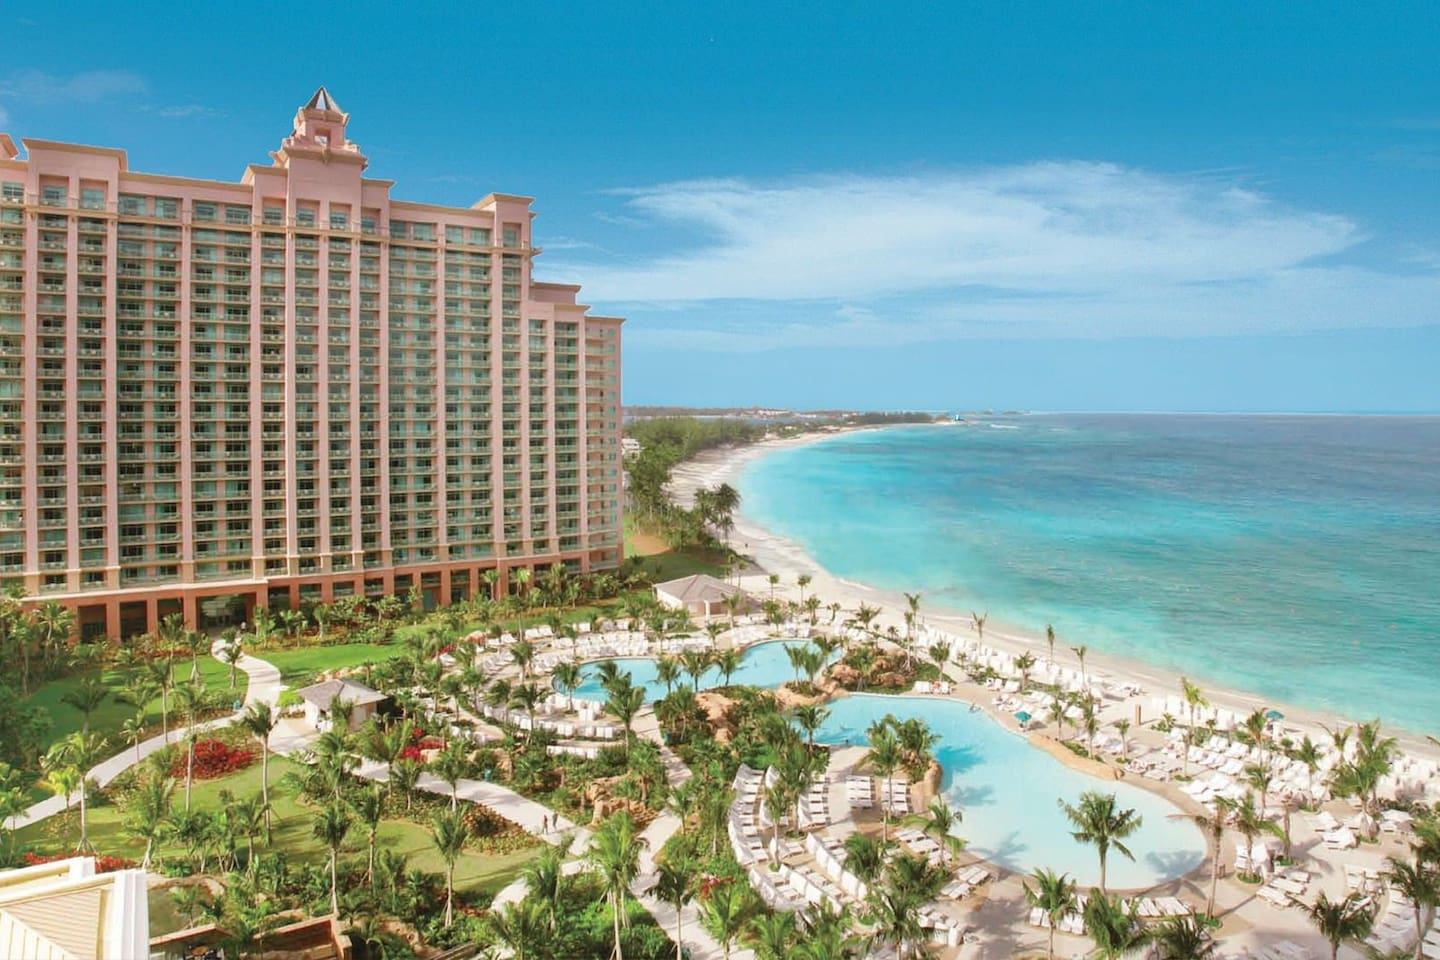 This is not a painting but a real photo. It is called Atlantis on Paradise Island, which is really a fitting name for what it really is: a place usually only exists long long ago and far far beyond. But now it is yours if you like it.